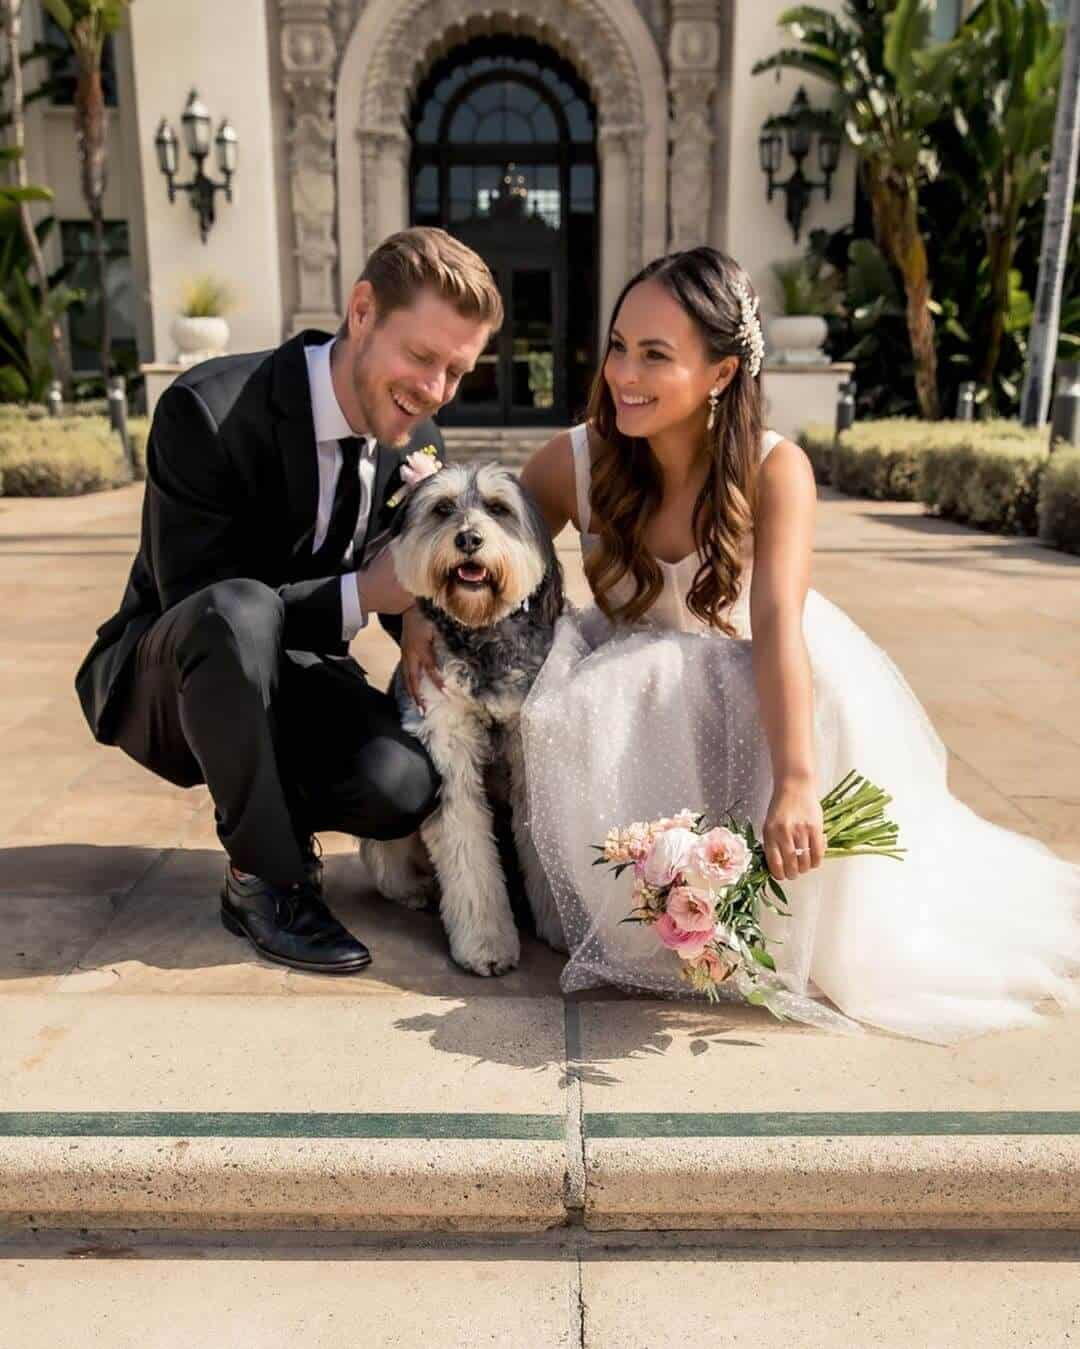 Wedding with Puppies Cute Wedding Puppy Beverly Hills Courthouse Melanee Shale Wolfgang 2 (1)